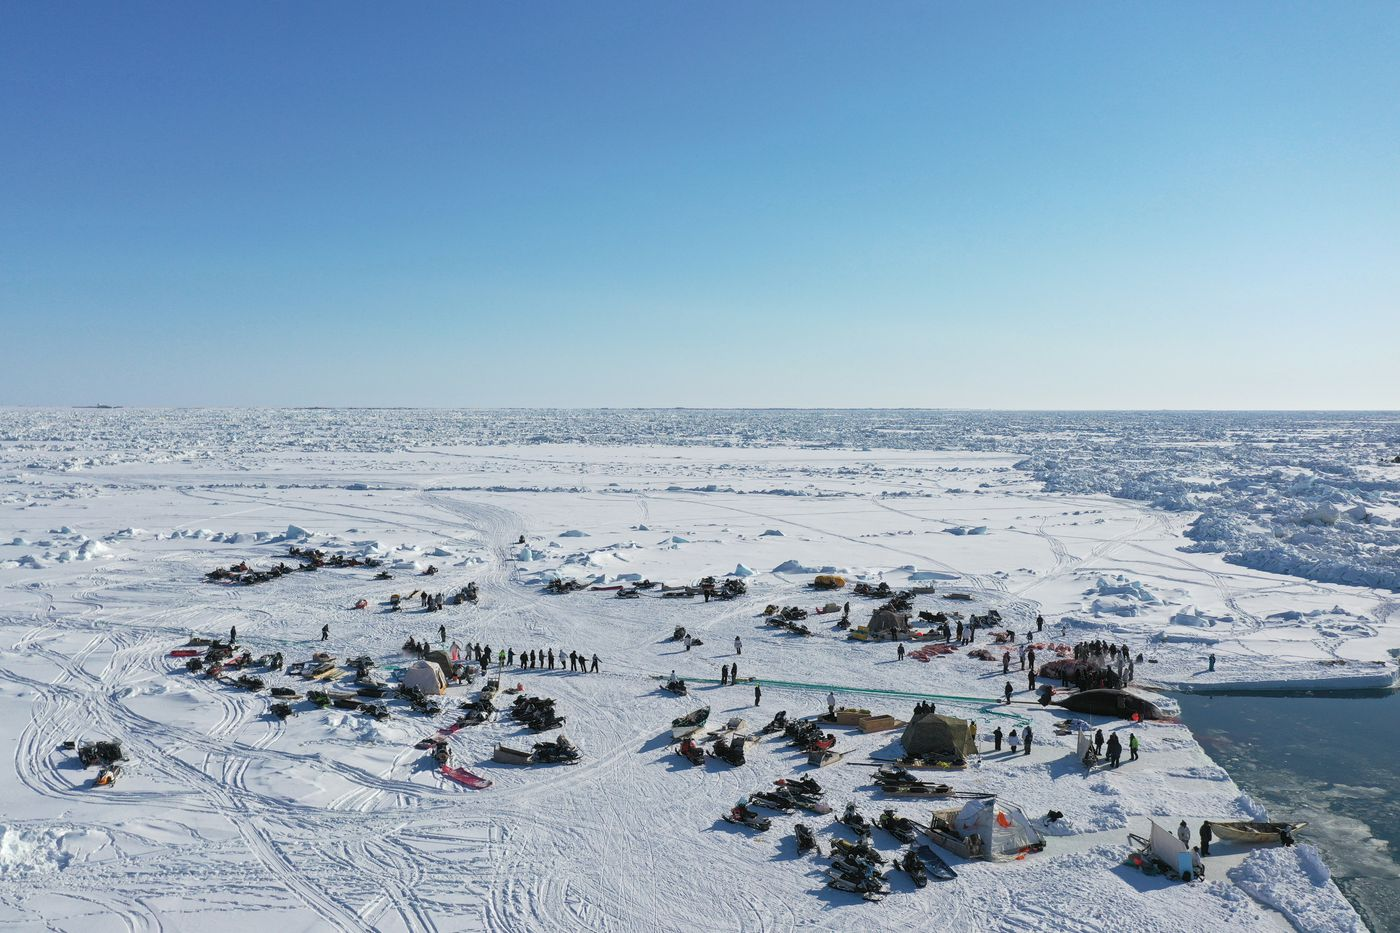 Utqiagvik community members join together to tow a bowhead whale to shore after three successful hunts in a single day in April. In a good year, about 10 whales are caught in spring whaling season and shared among the community for food throughout the year. (Photo by Yves Brower)